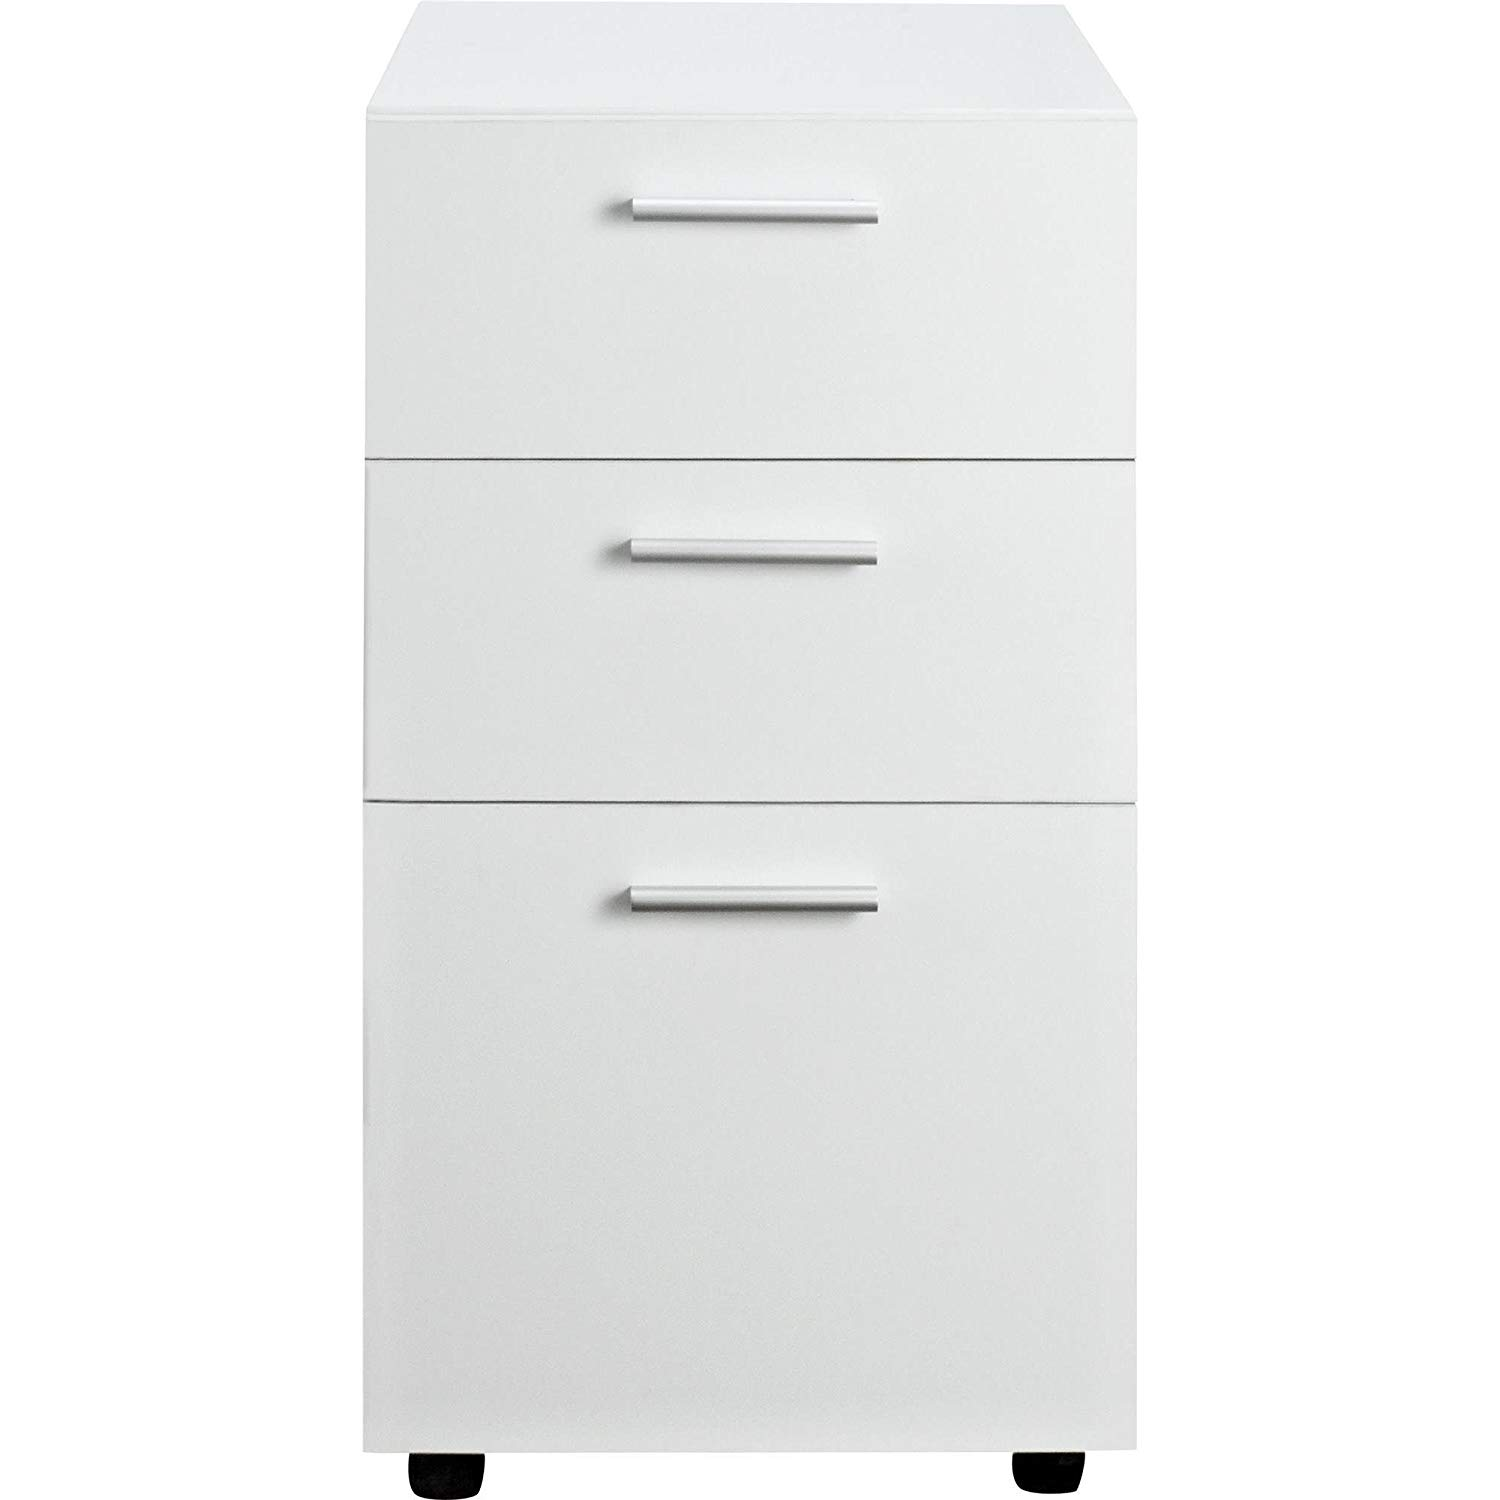 MyEasyShopping Wicker Park Throop White Mobile File Cabinet Cabinet Mobile File Drawer 3 Filing White Office Home Metal Rolling Storage